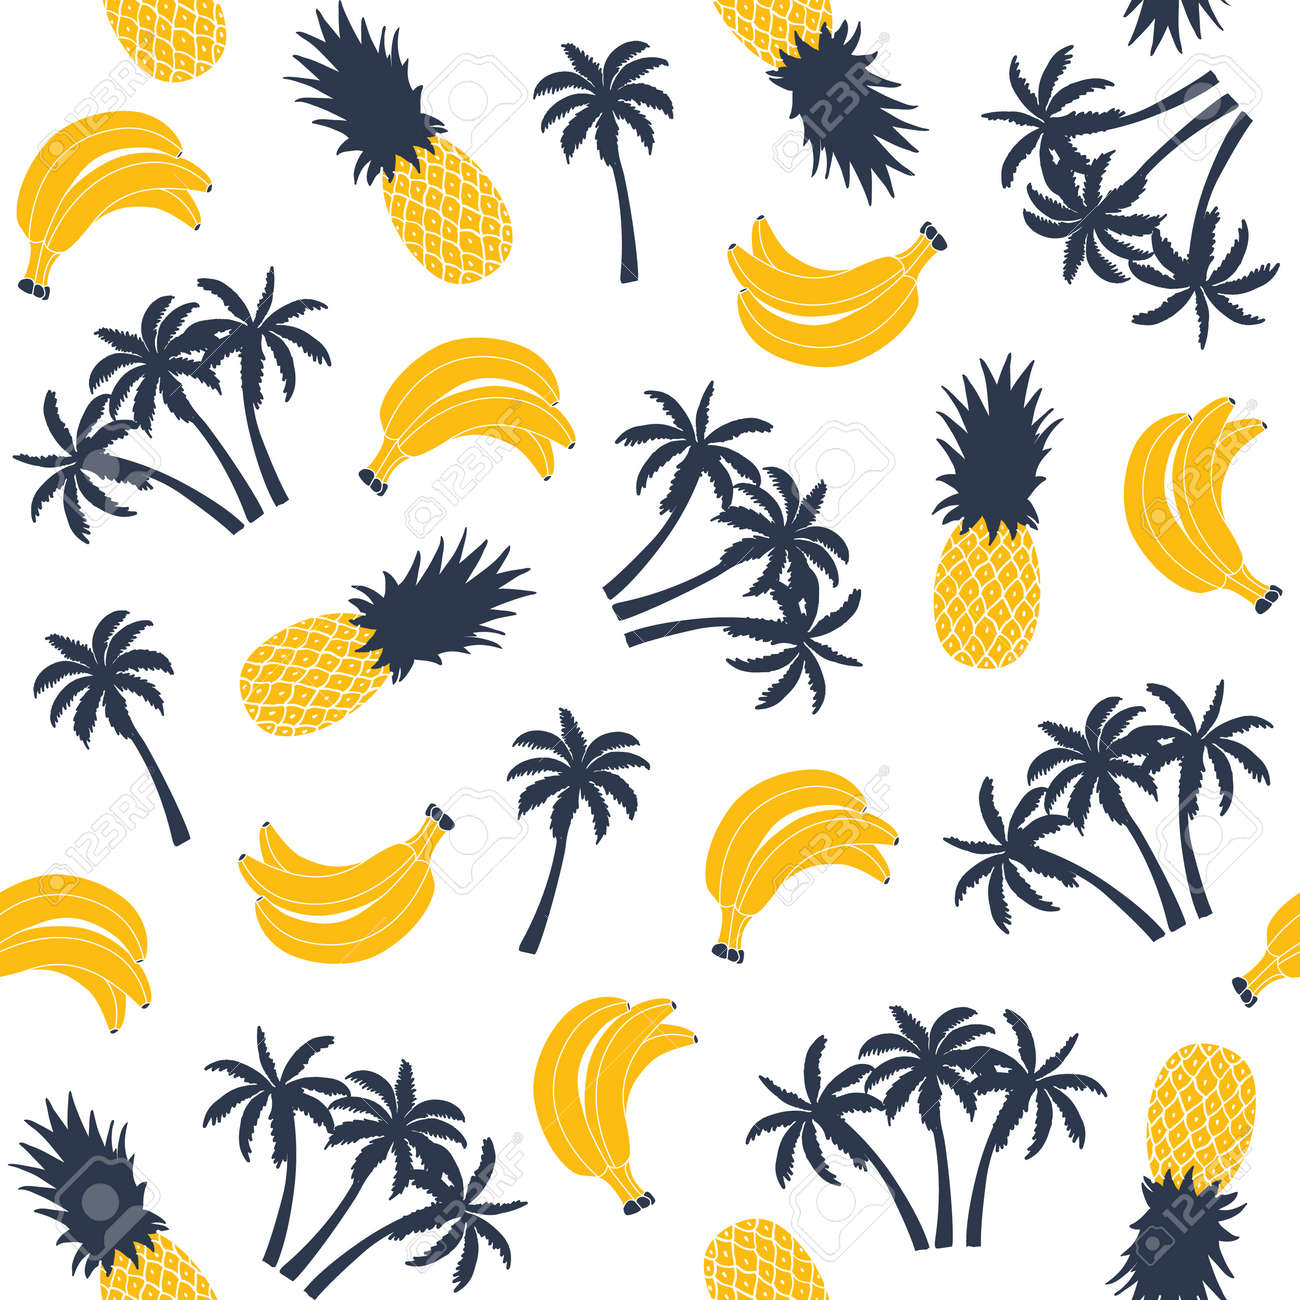 Palm tree with banana and pineapple, seamless pattern. Vector illustration - 55756568